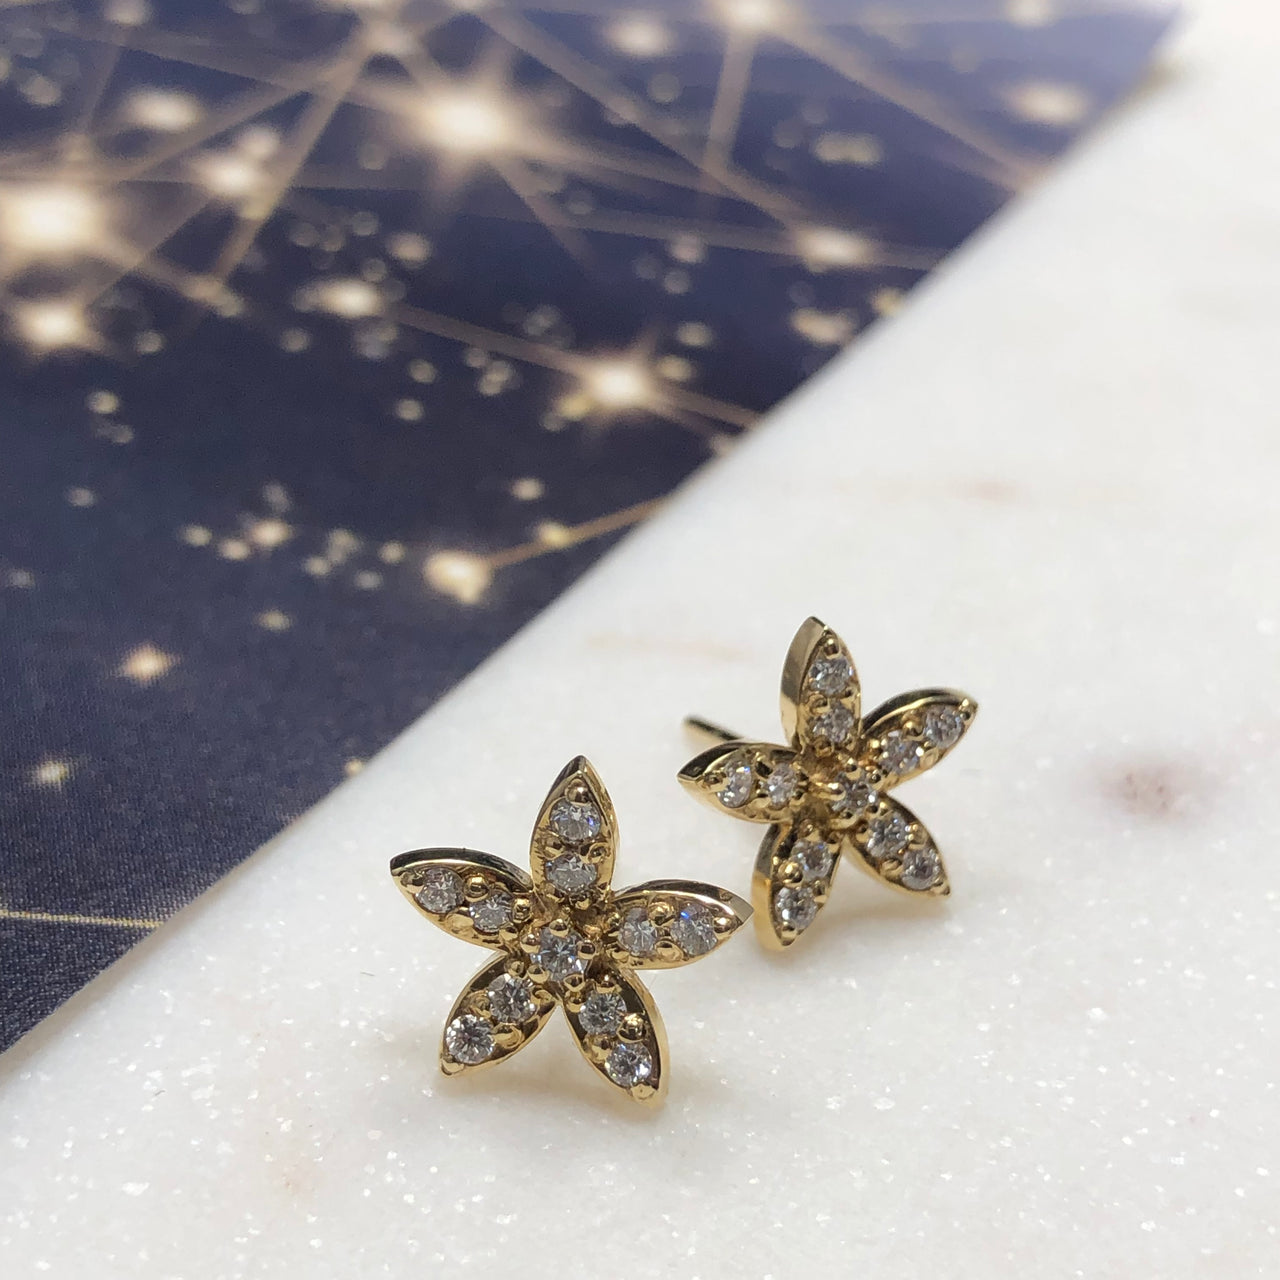 14K Yellow Gold Star Diamond Earrings.